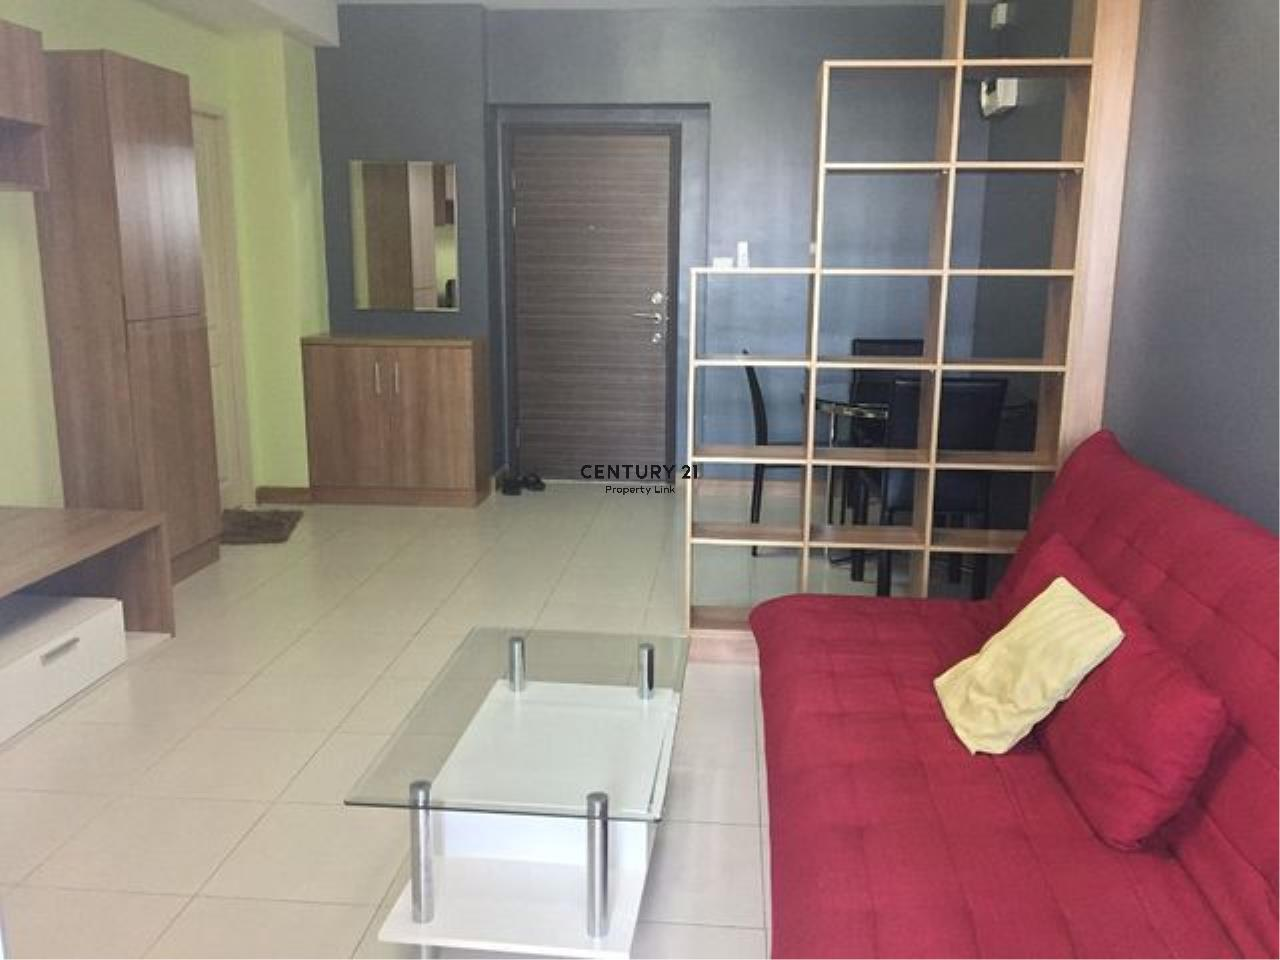 Century21 Property Link Agency's 39-CC-61272 Supalai Park Ratchayothin Room For Sale 2 Bedroom Chatuchak Nearby Phahon Yothin MRT Selling price 5 MB.   1